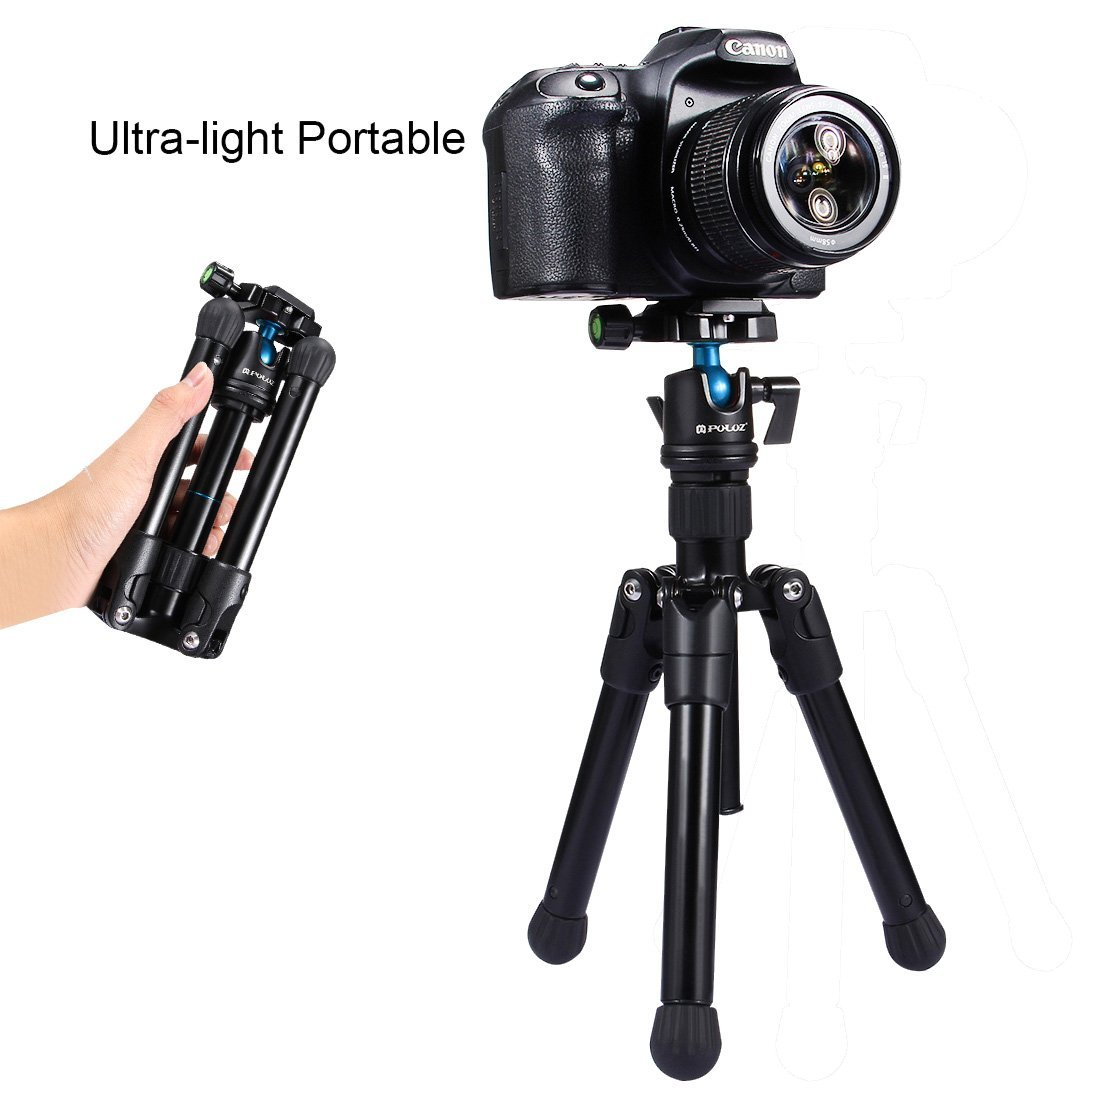 Microspur Tripod, PULUZ Professcial Universal Pocket Mini Portable Lightweight Magnesium Alloy Travel Tripod Mount with 360 Degree Ball Head for DSLR Camera & Camcorder, Height:24.5-57cm, Max Load:3kg